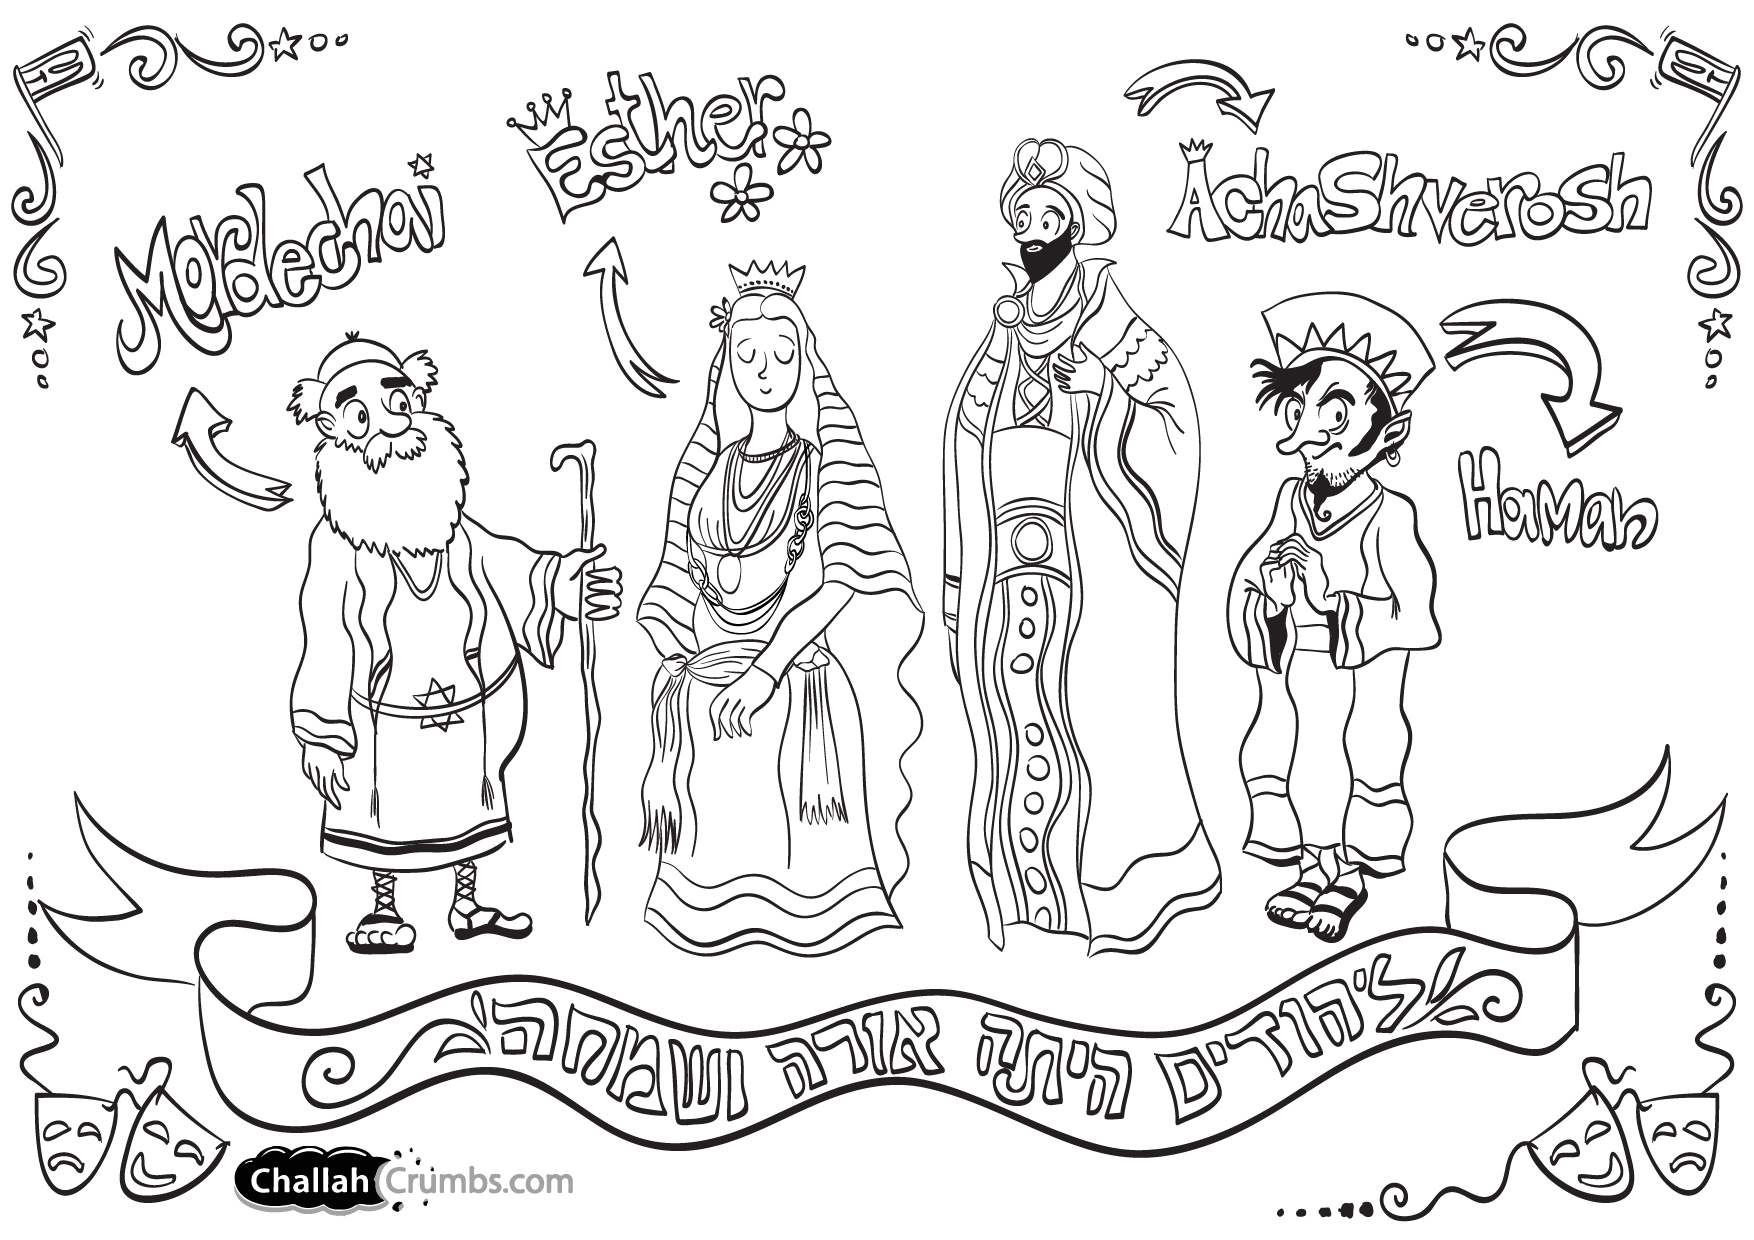 Uncategorized Purim Coloring Page fabulous purim coloring page challah crumbs click here to print our esther sheet